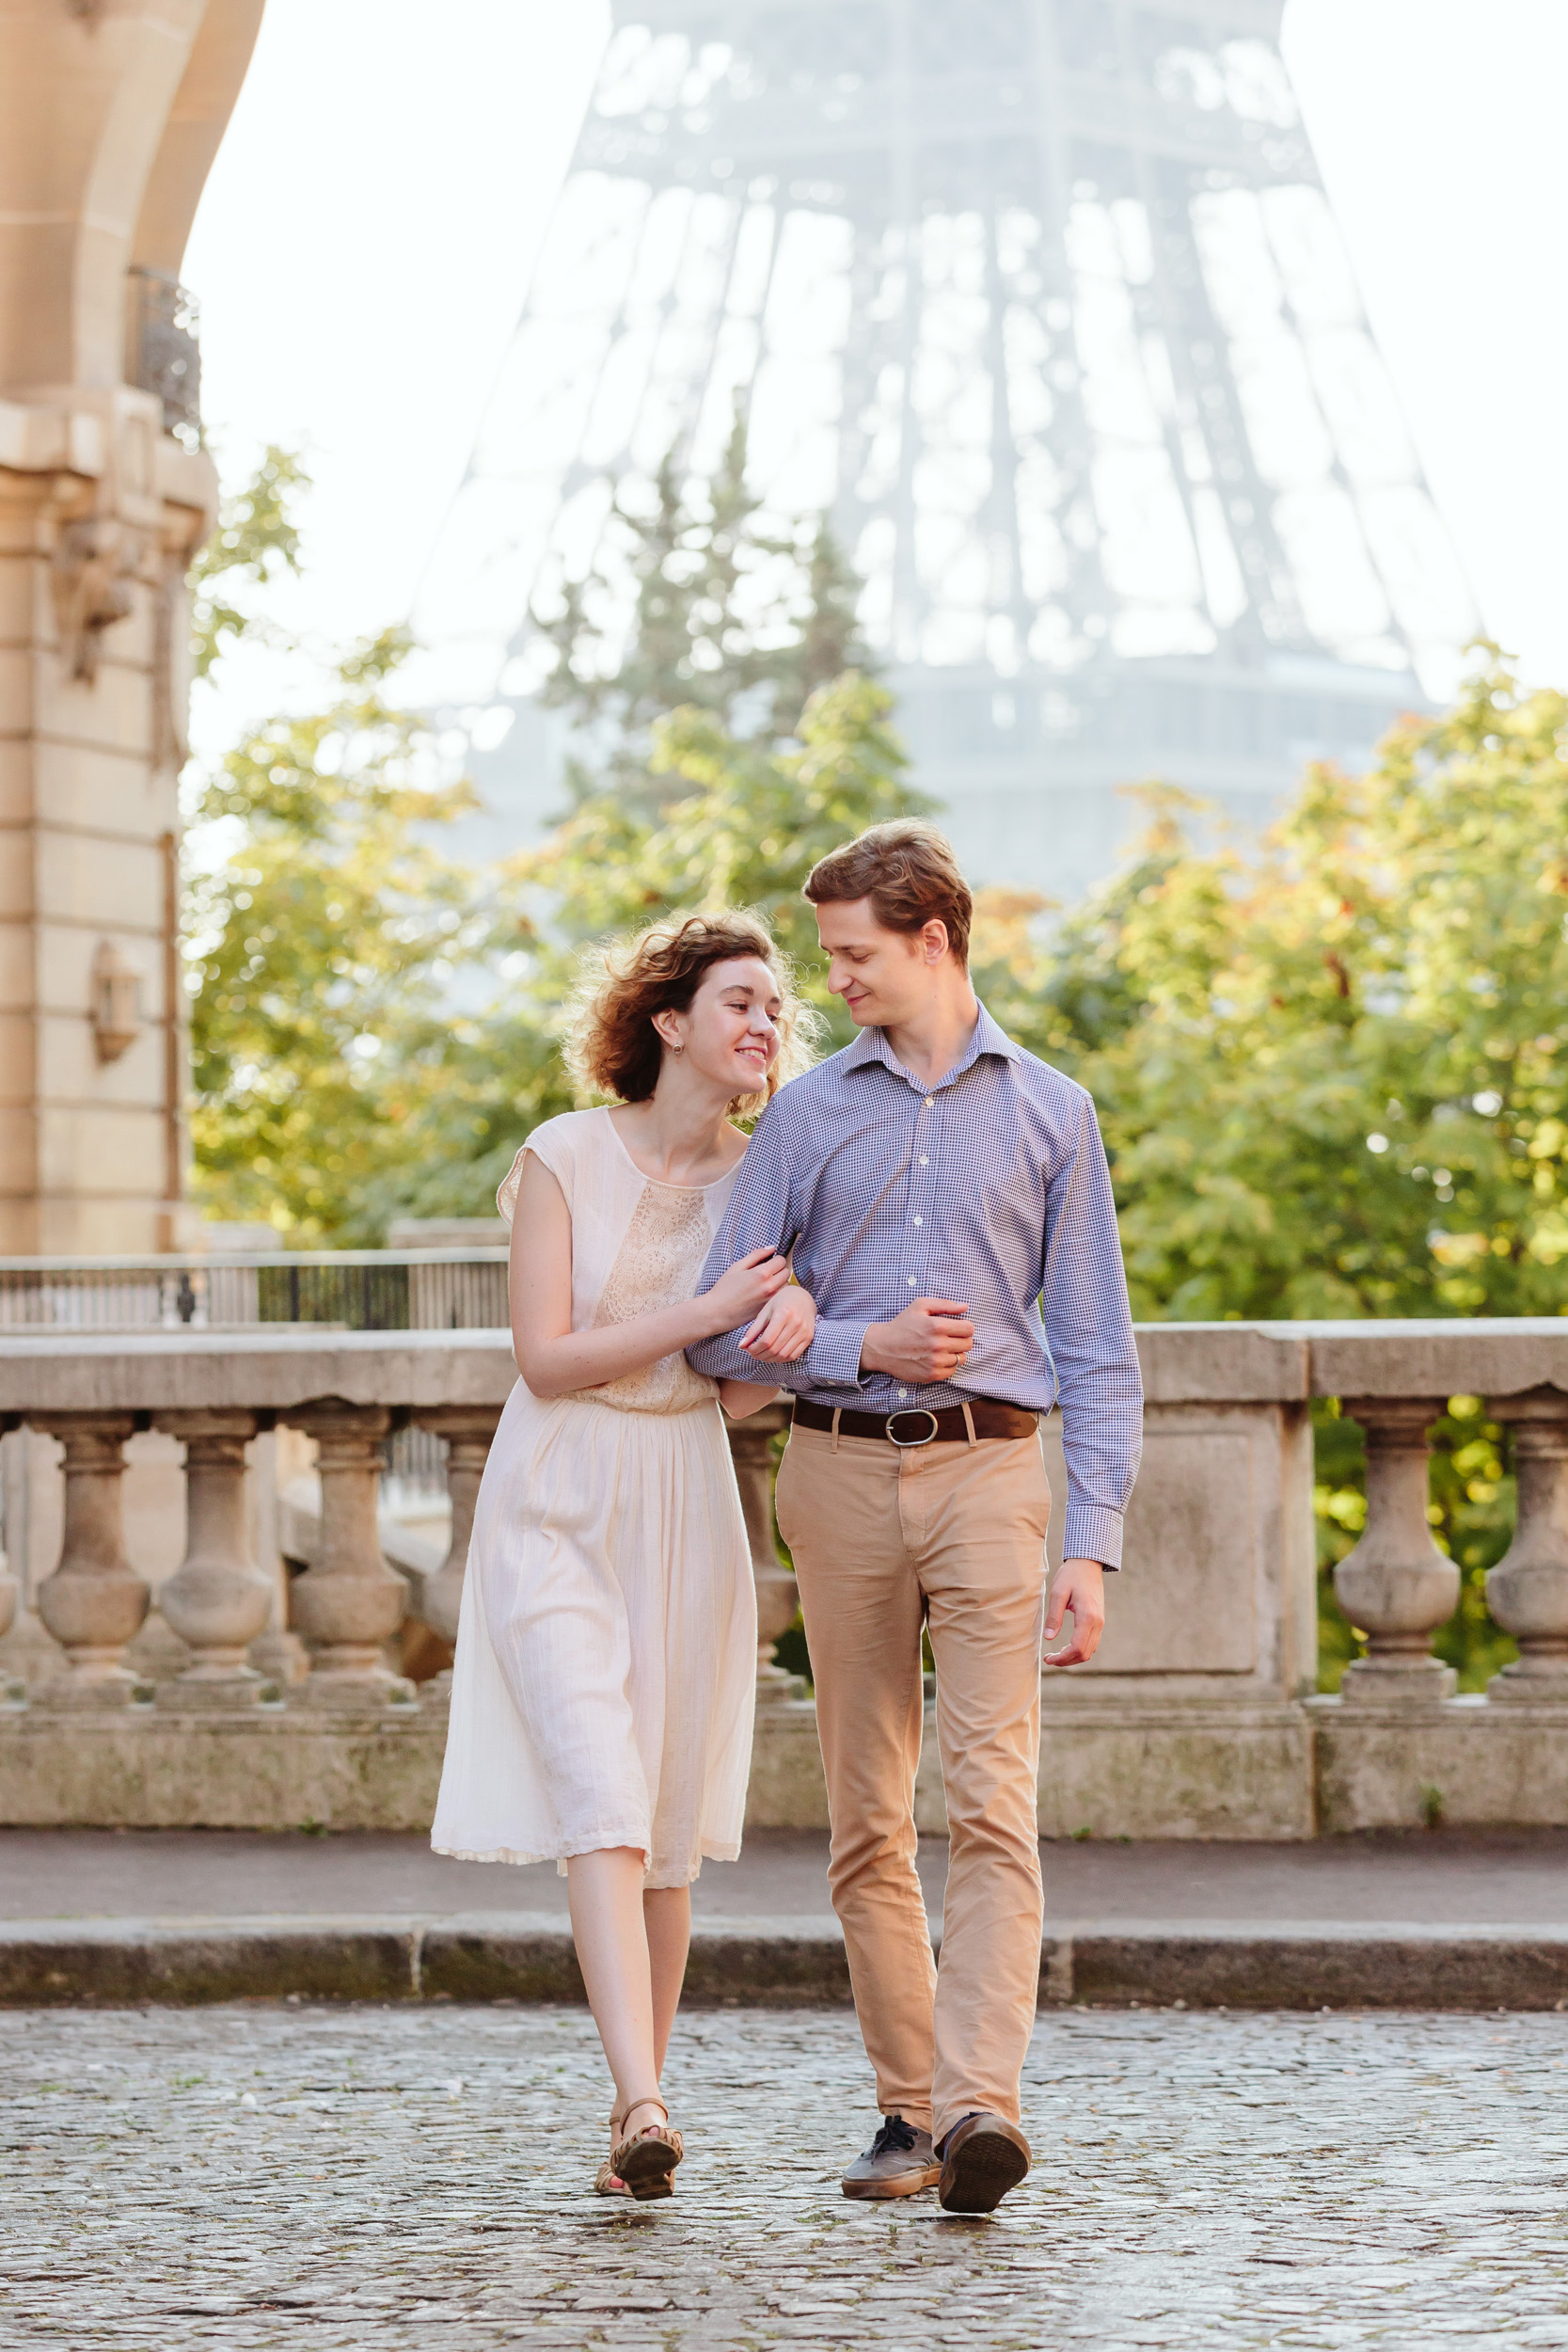 Travel love story couple walking next to Eiffel Tower at Passy captured by Paris Photographer Federico Guendel IheartParisFr